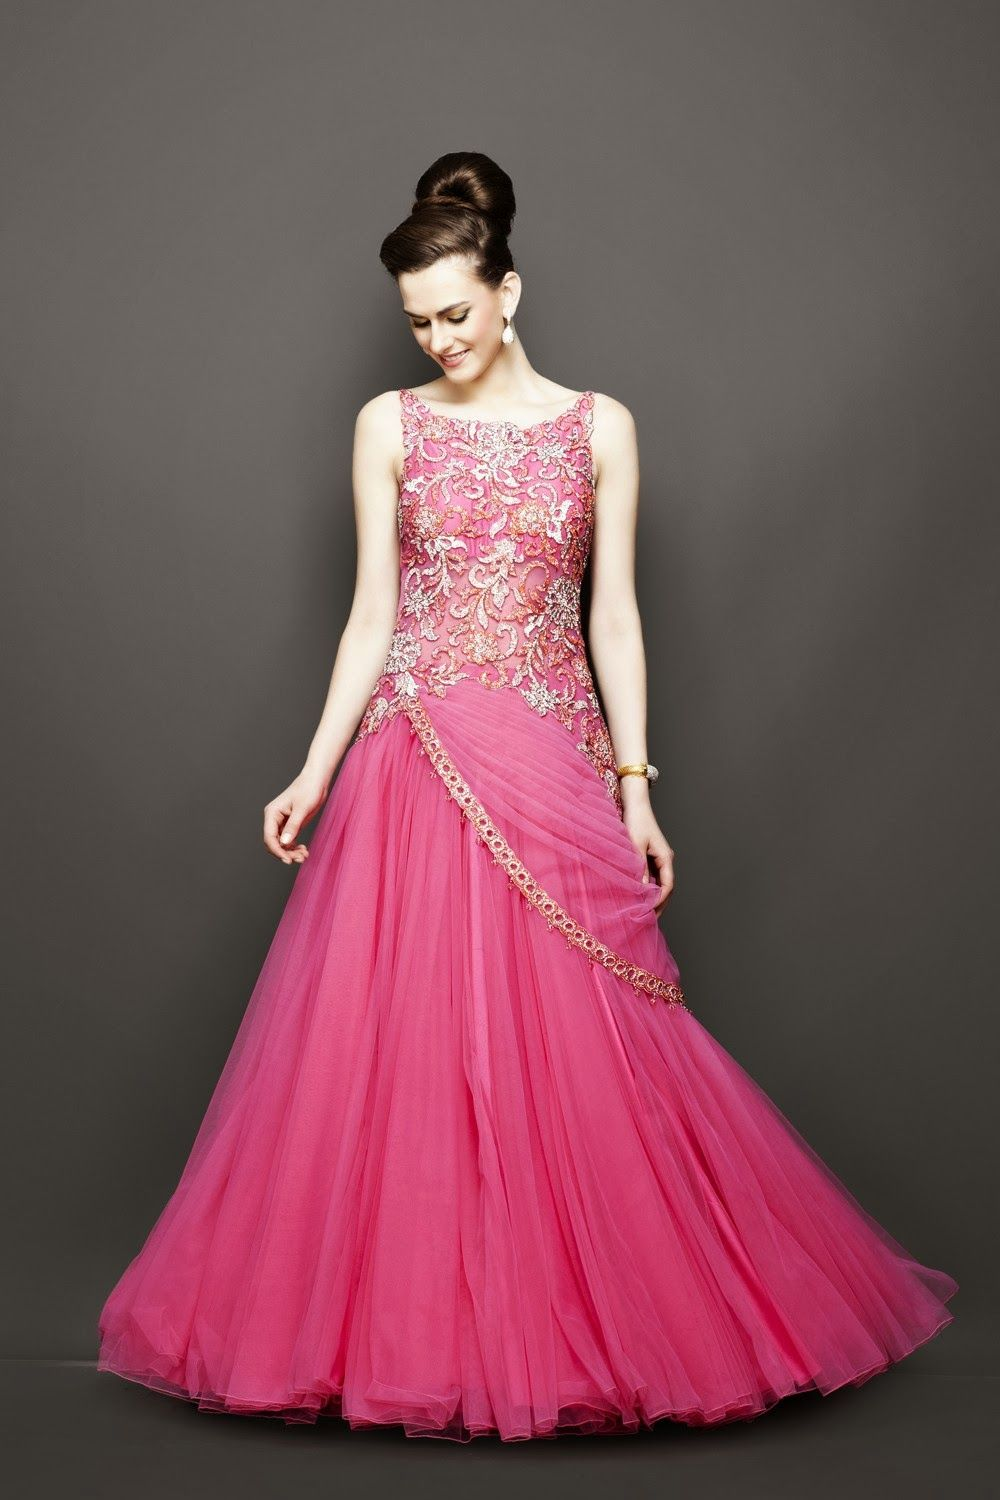 evening dress for wedding in pink color dresses